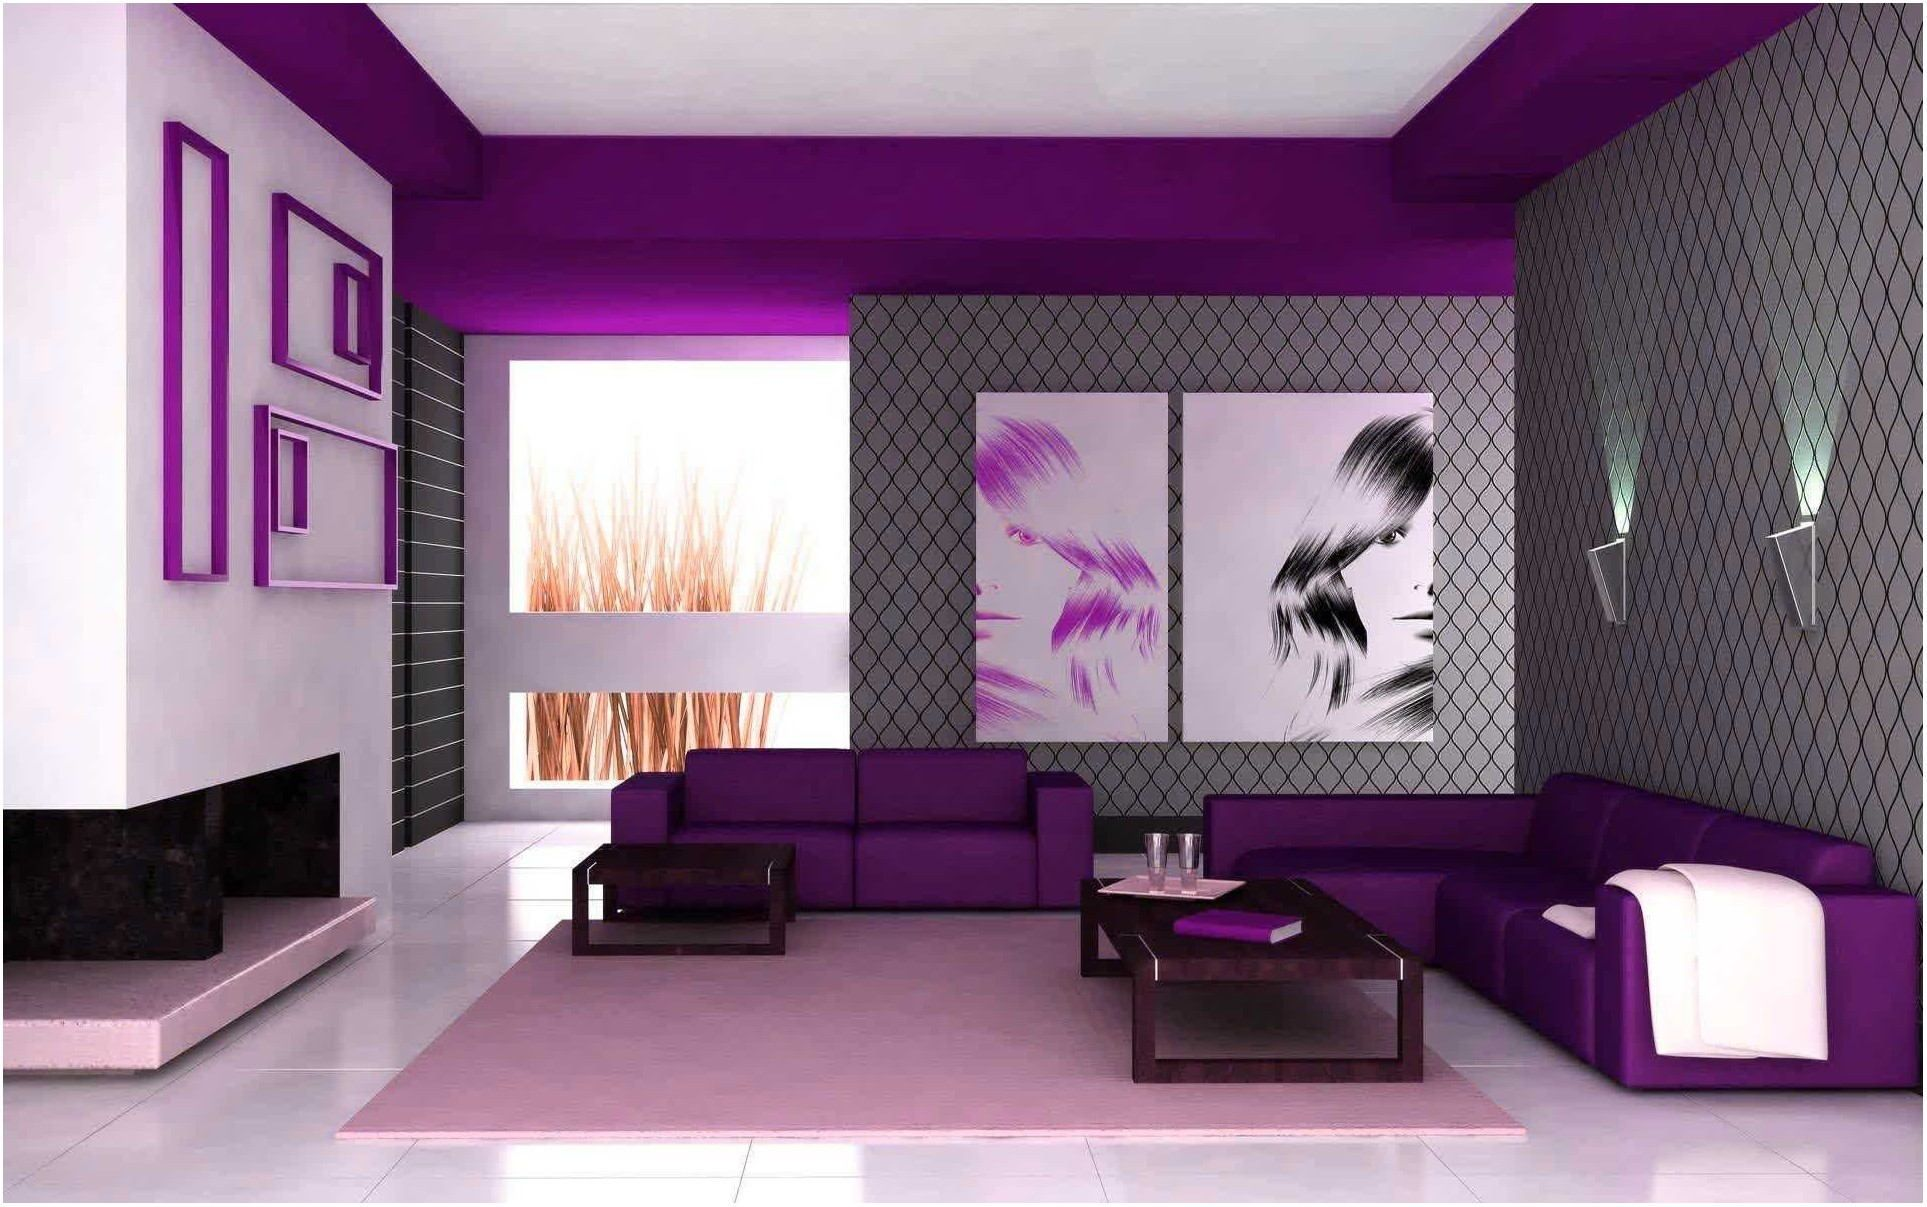 Living Room Painting Designs In Nigeria Purple Living Room Purple Wall Decor Room Colors #paint #designs #for #living #room